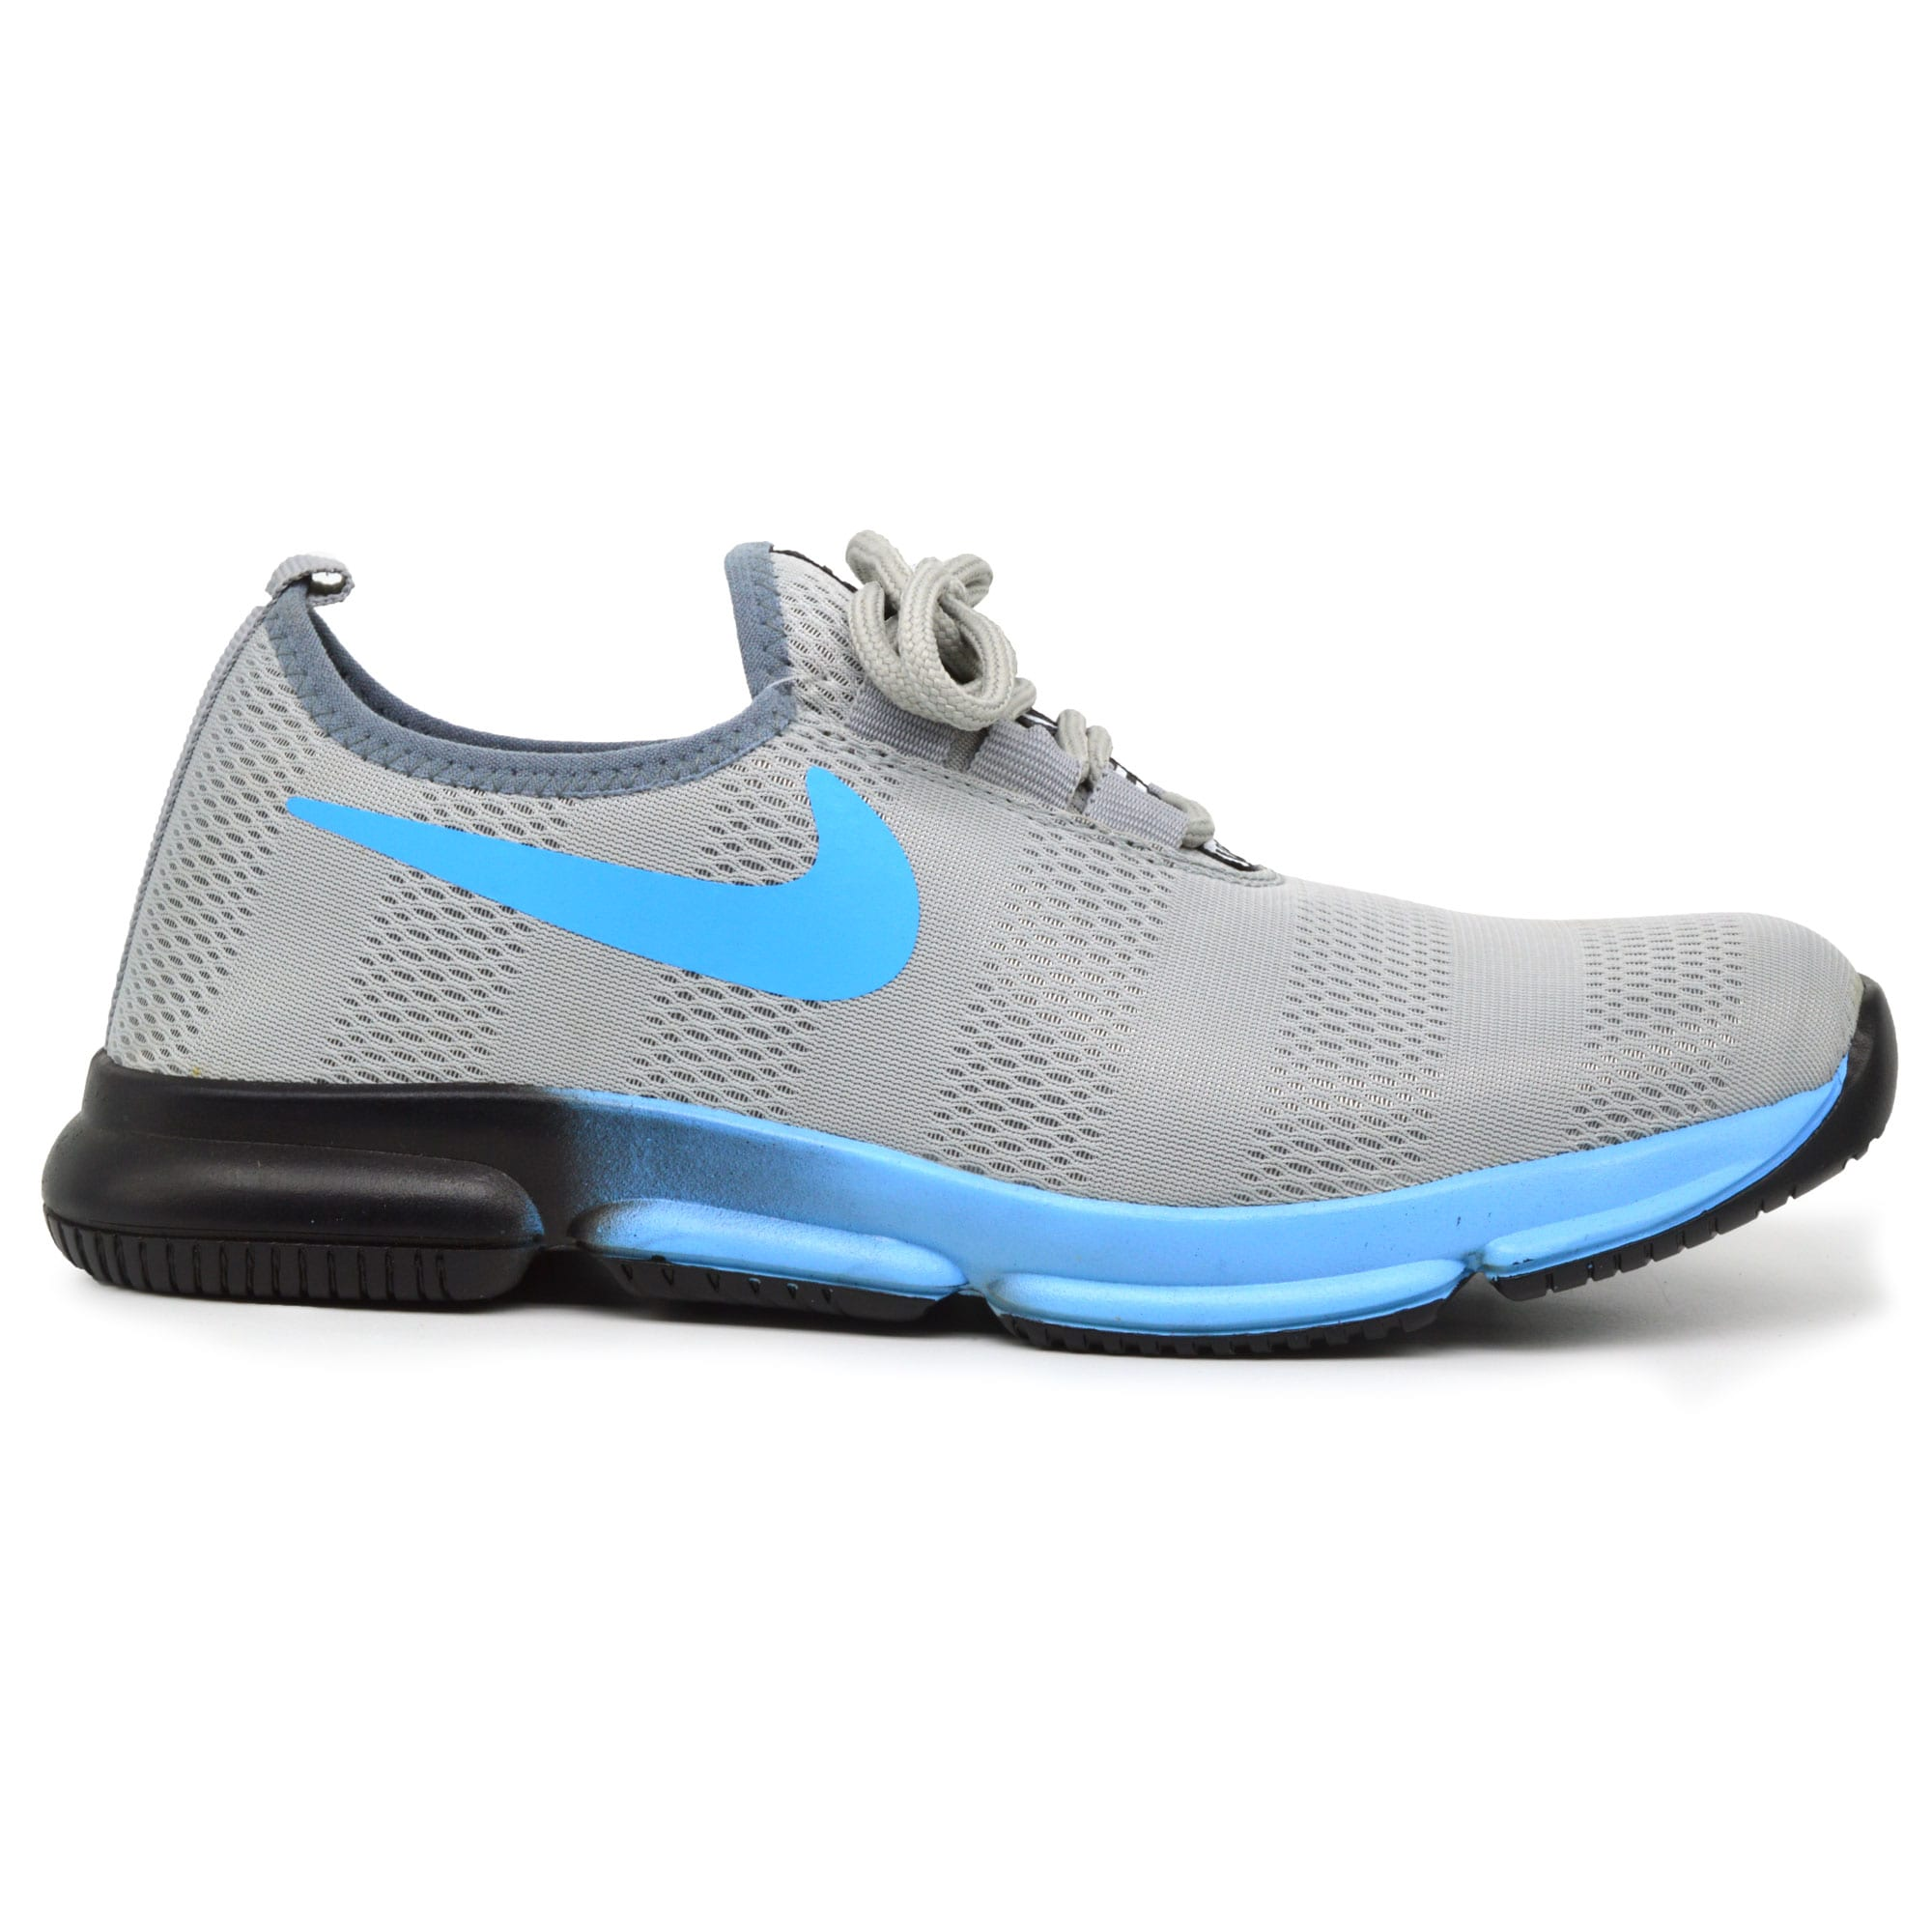 IMCOLUS7.171_GREY  OUTDOOR WEAR & FLEXIBLE MENS Sports Shoes SHOES  IMCOLUS7.171_GREY (GREY,6TO10,8 PAIR)